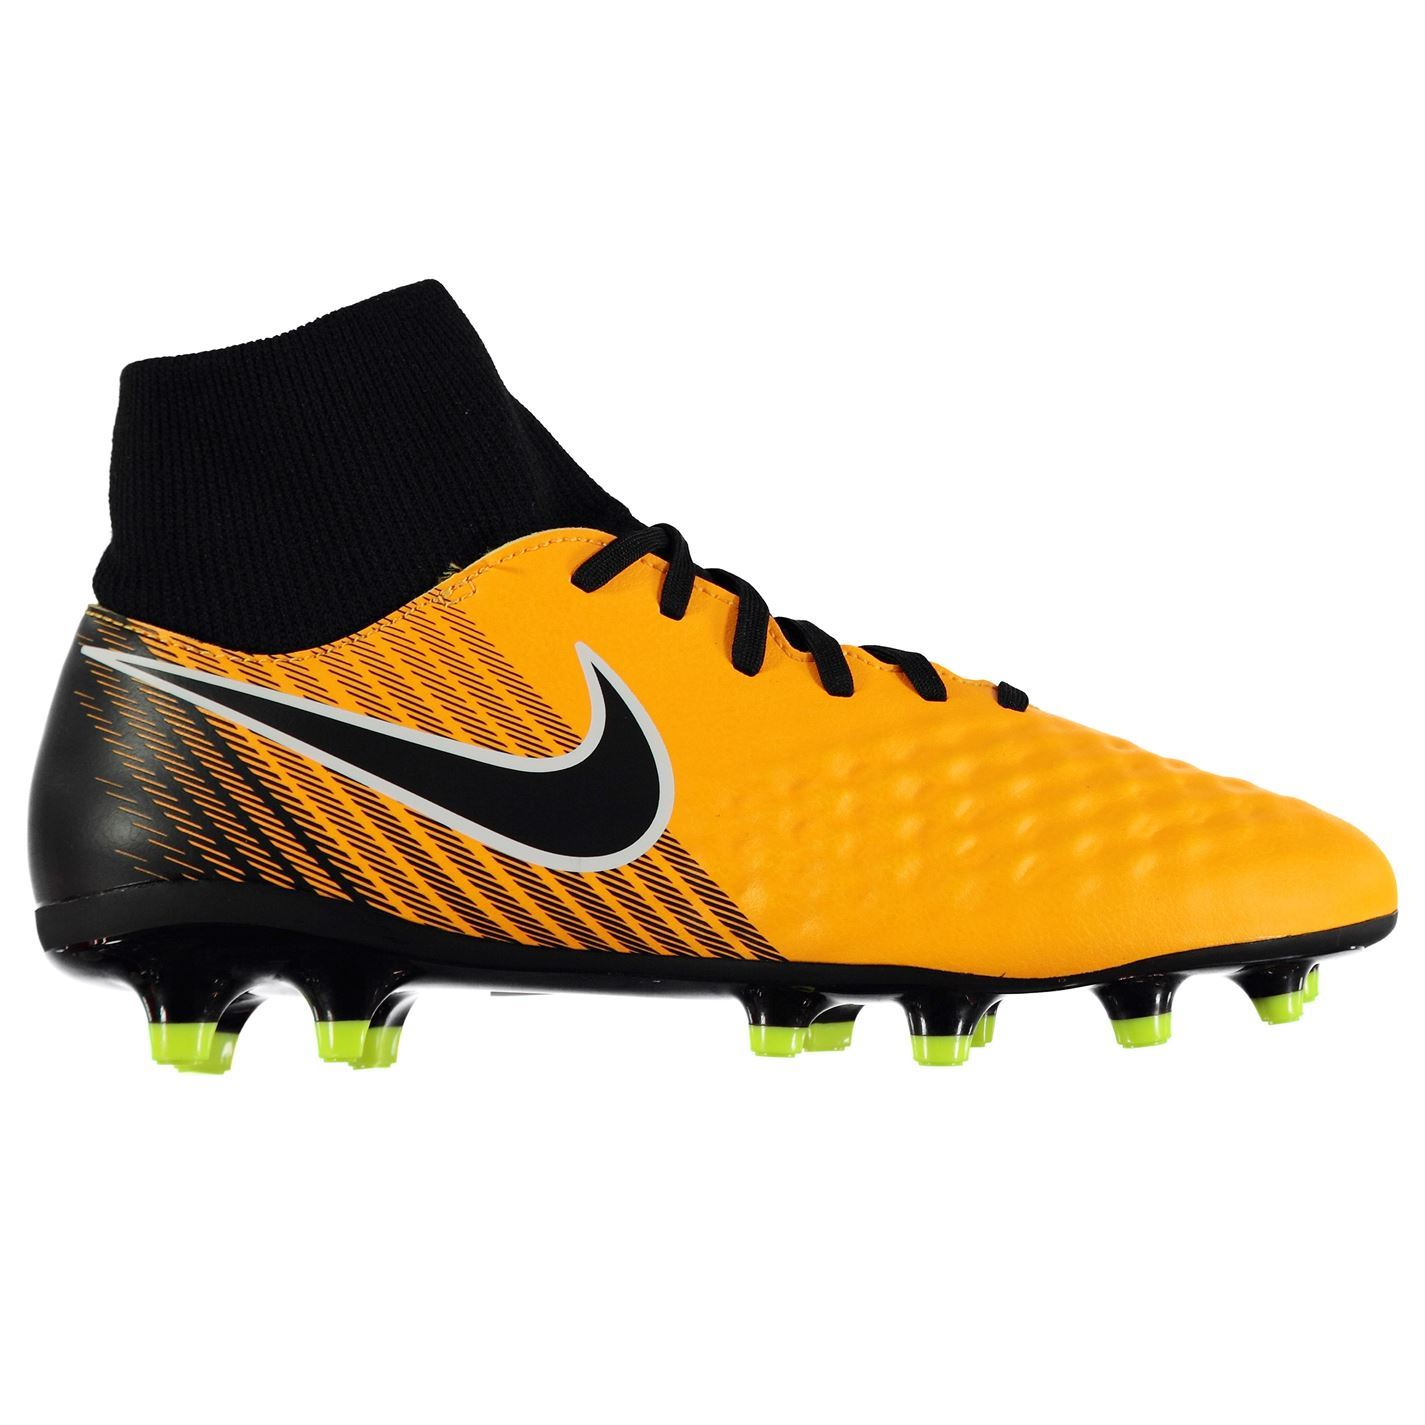 pretty nice 56925 52b29 Details about Nike Magista Onda II DF Firm Ground Football Boots Mens  Orange Soccer Cleats